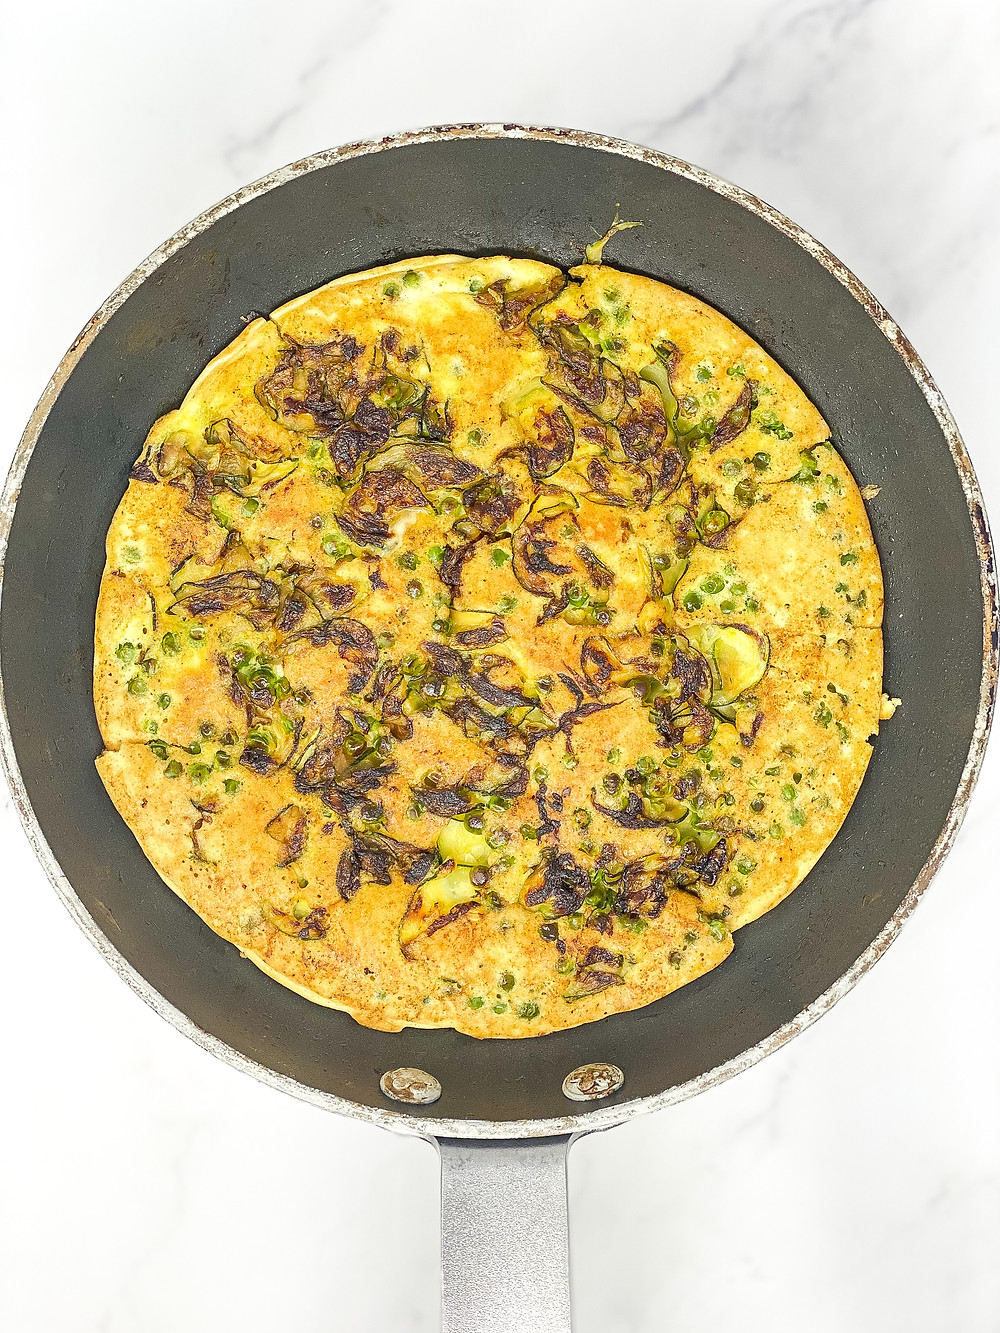 COURGETTE & PEAS OMELETTE in the pan